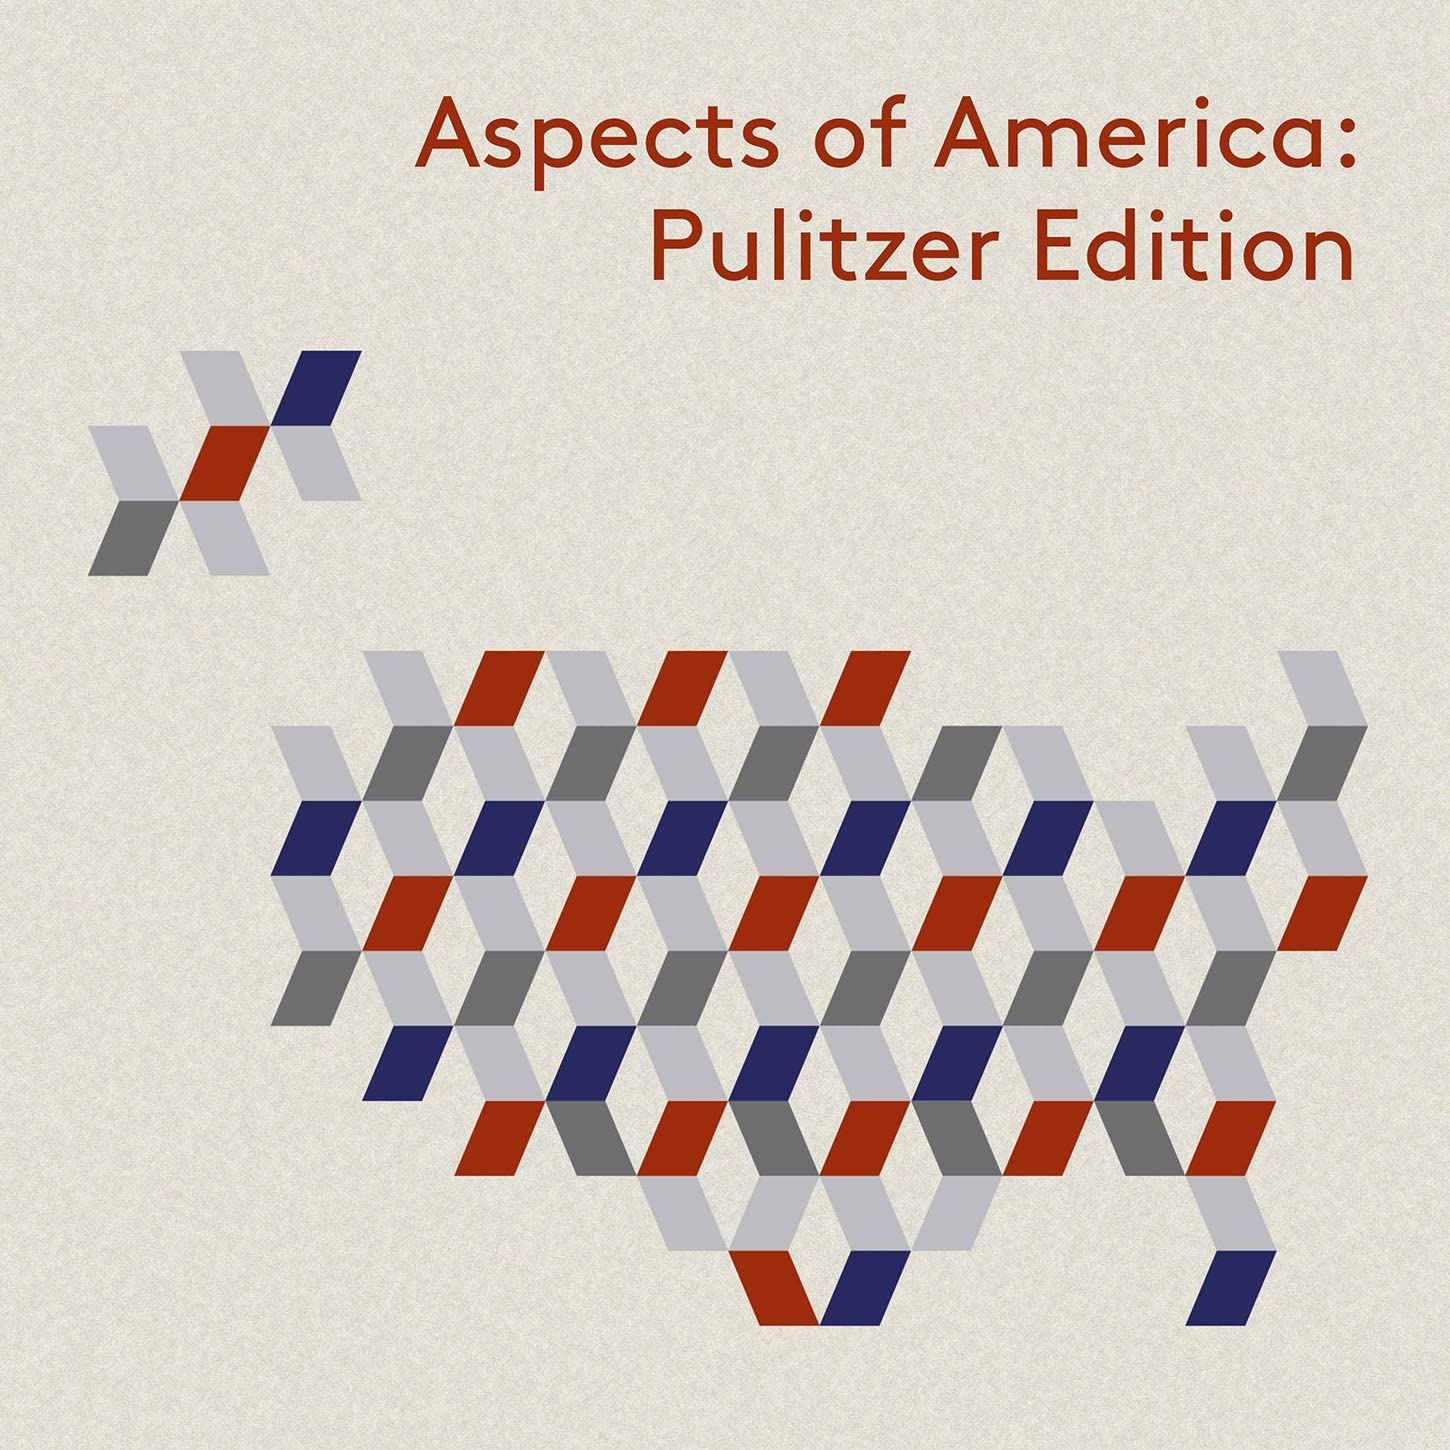 Review of Aspects of America: The Pulitzer Edition